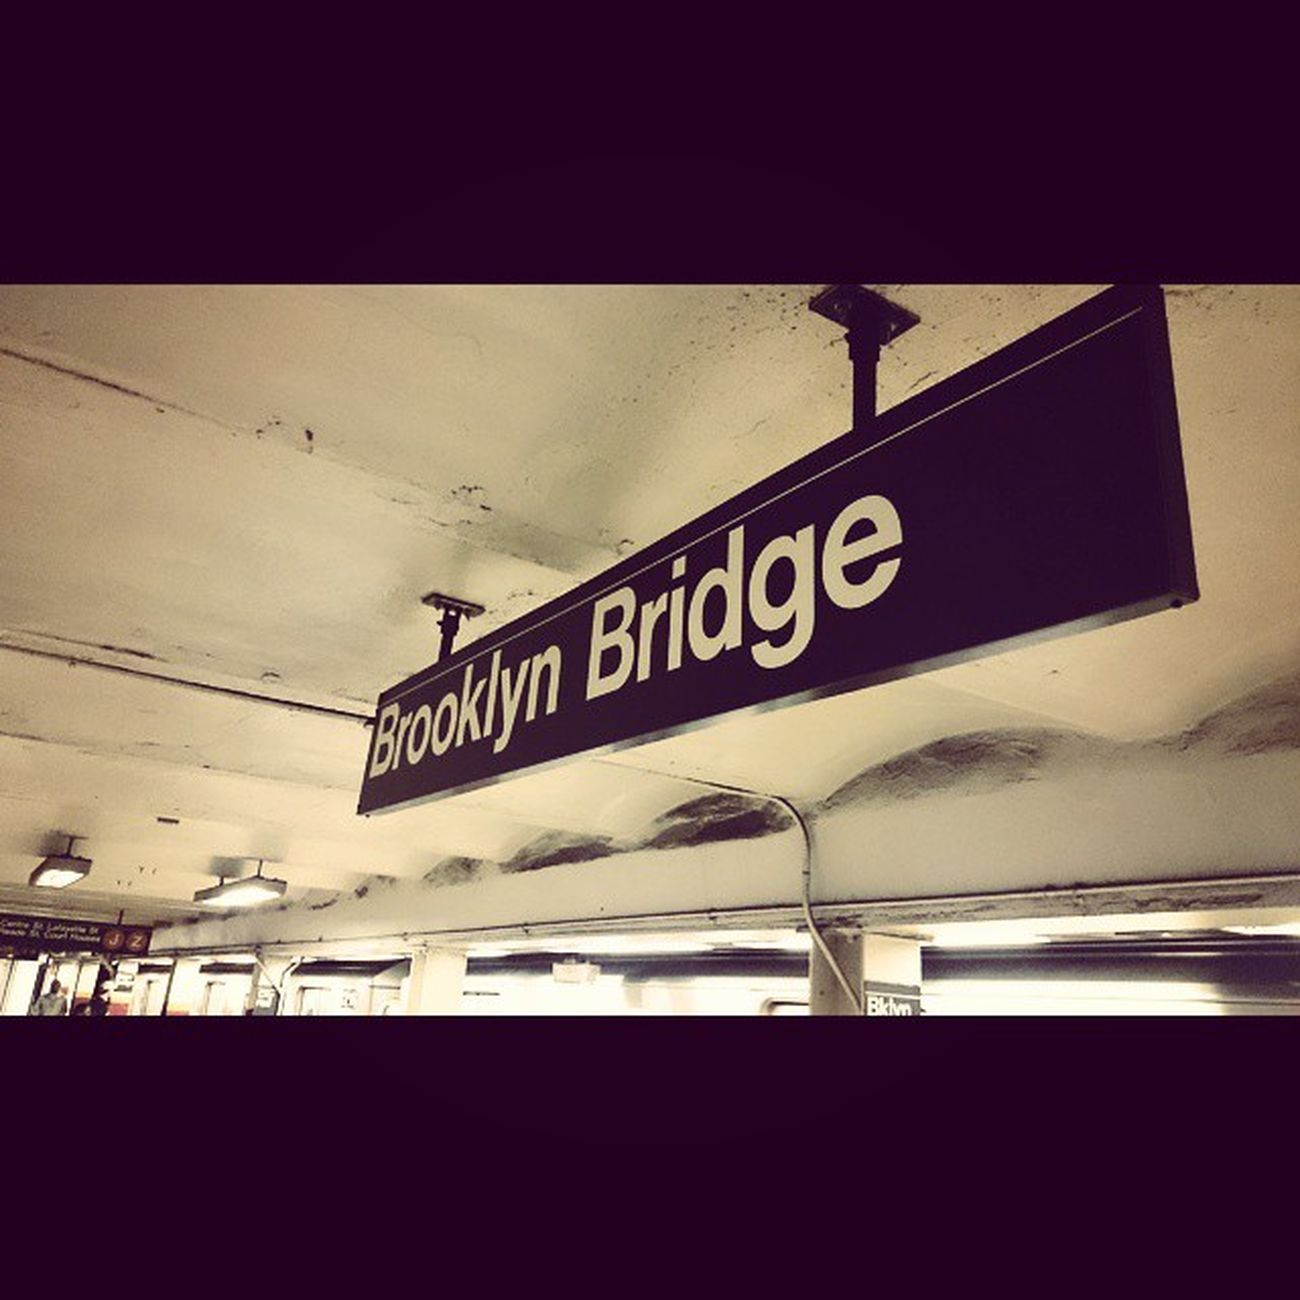 Subway Nycsubway Nycmetro Brooklynbridge Newyork